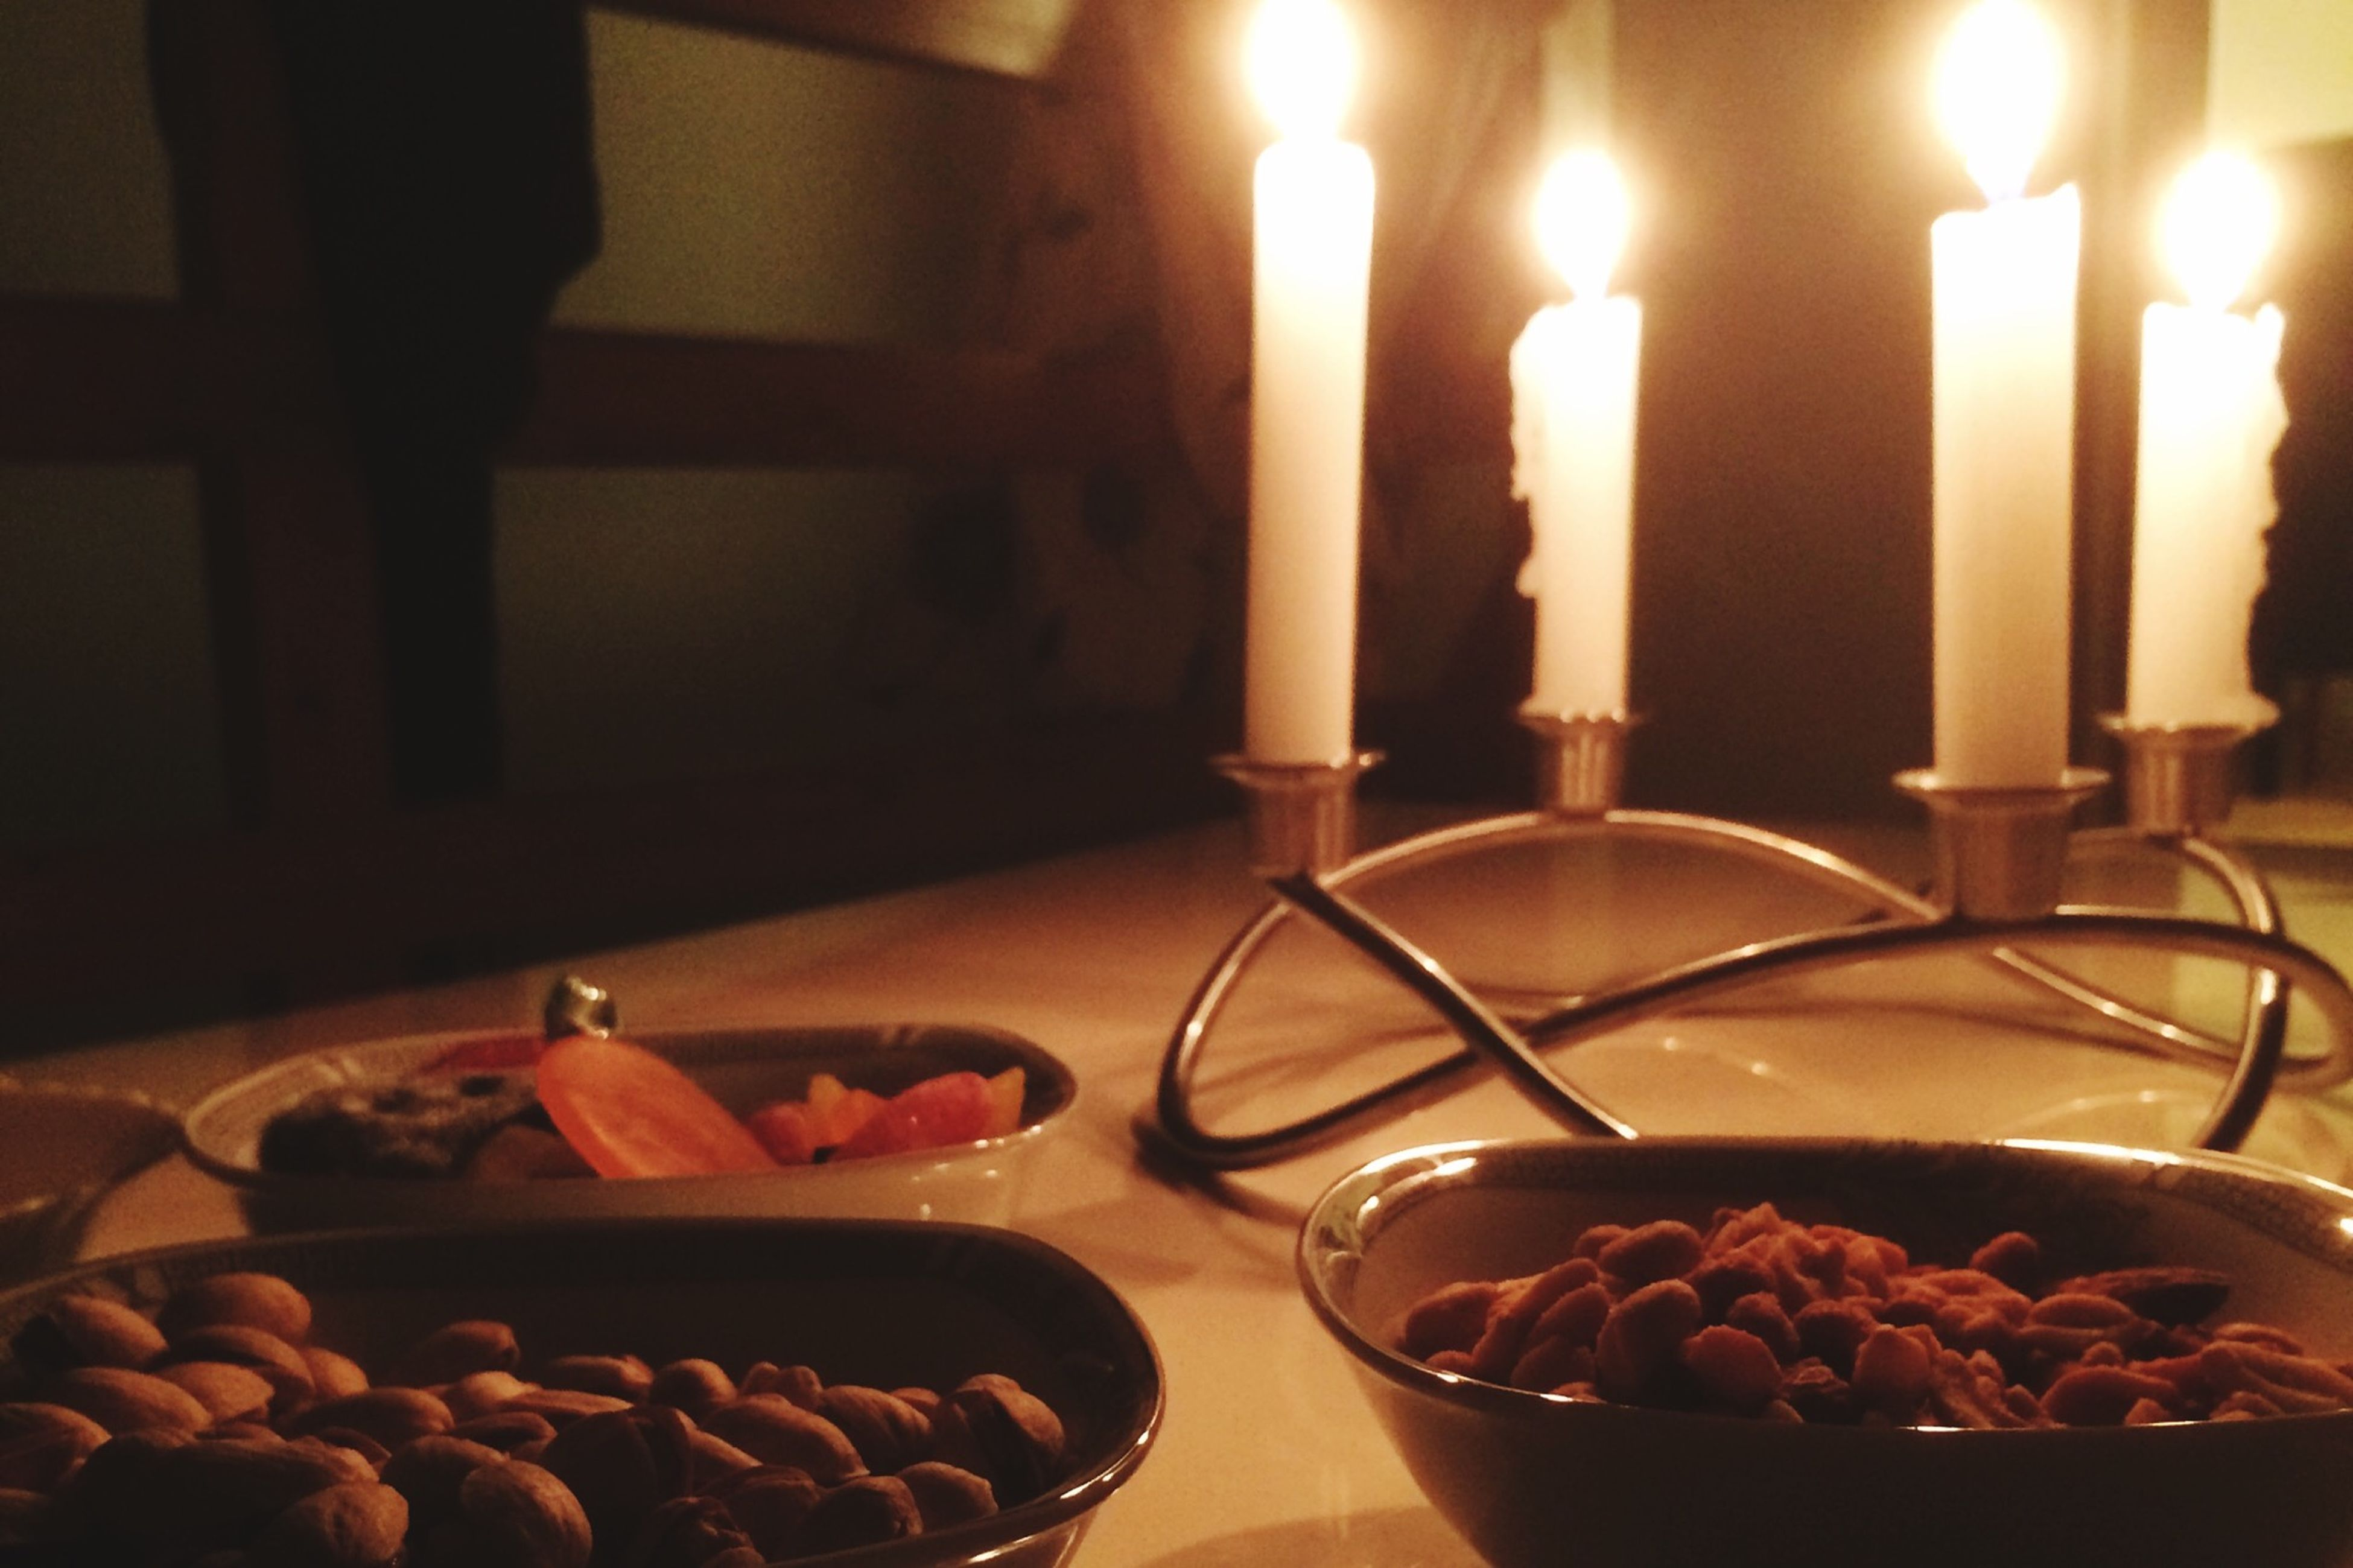 indoors, food and drink, food, table, still life, flame, burning, candle, freshness, heat - temperature, ready-to-eat, illuminated, plate, close-up, restaurant, drinking glass, indulgence, healthy eating, fire - natural phenomenon, lit